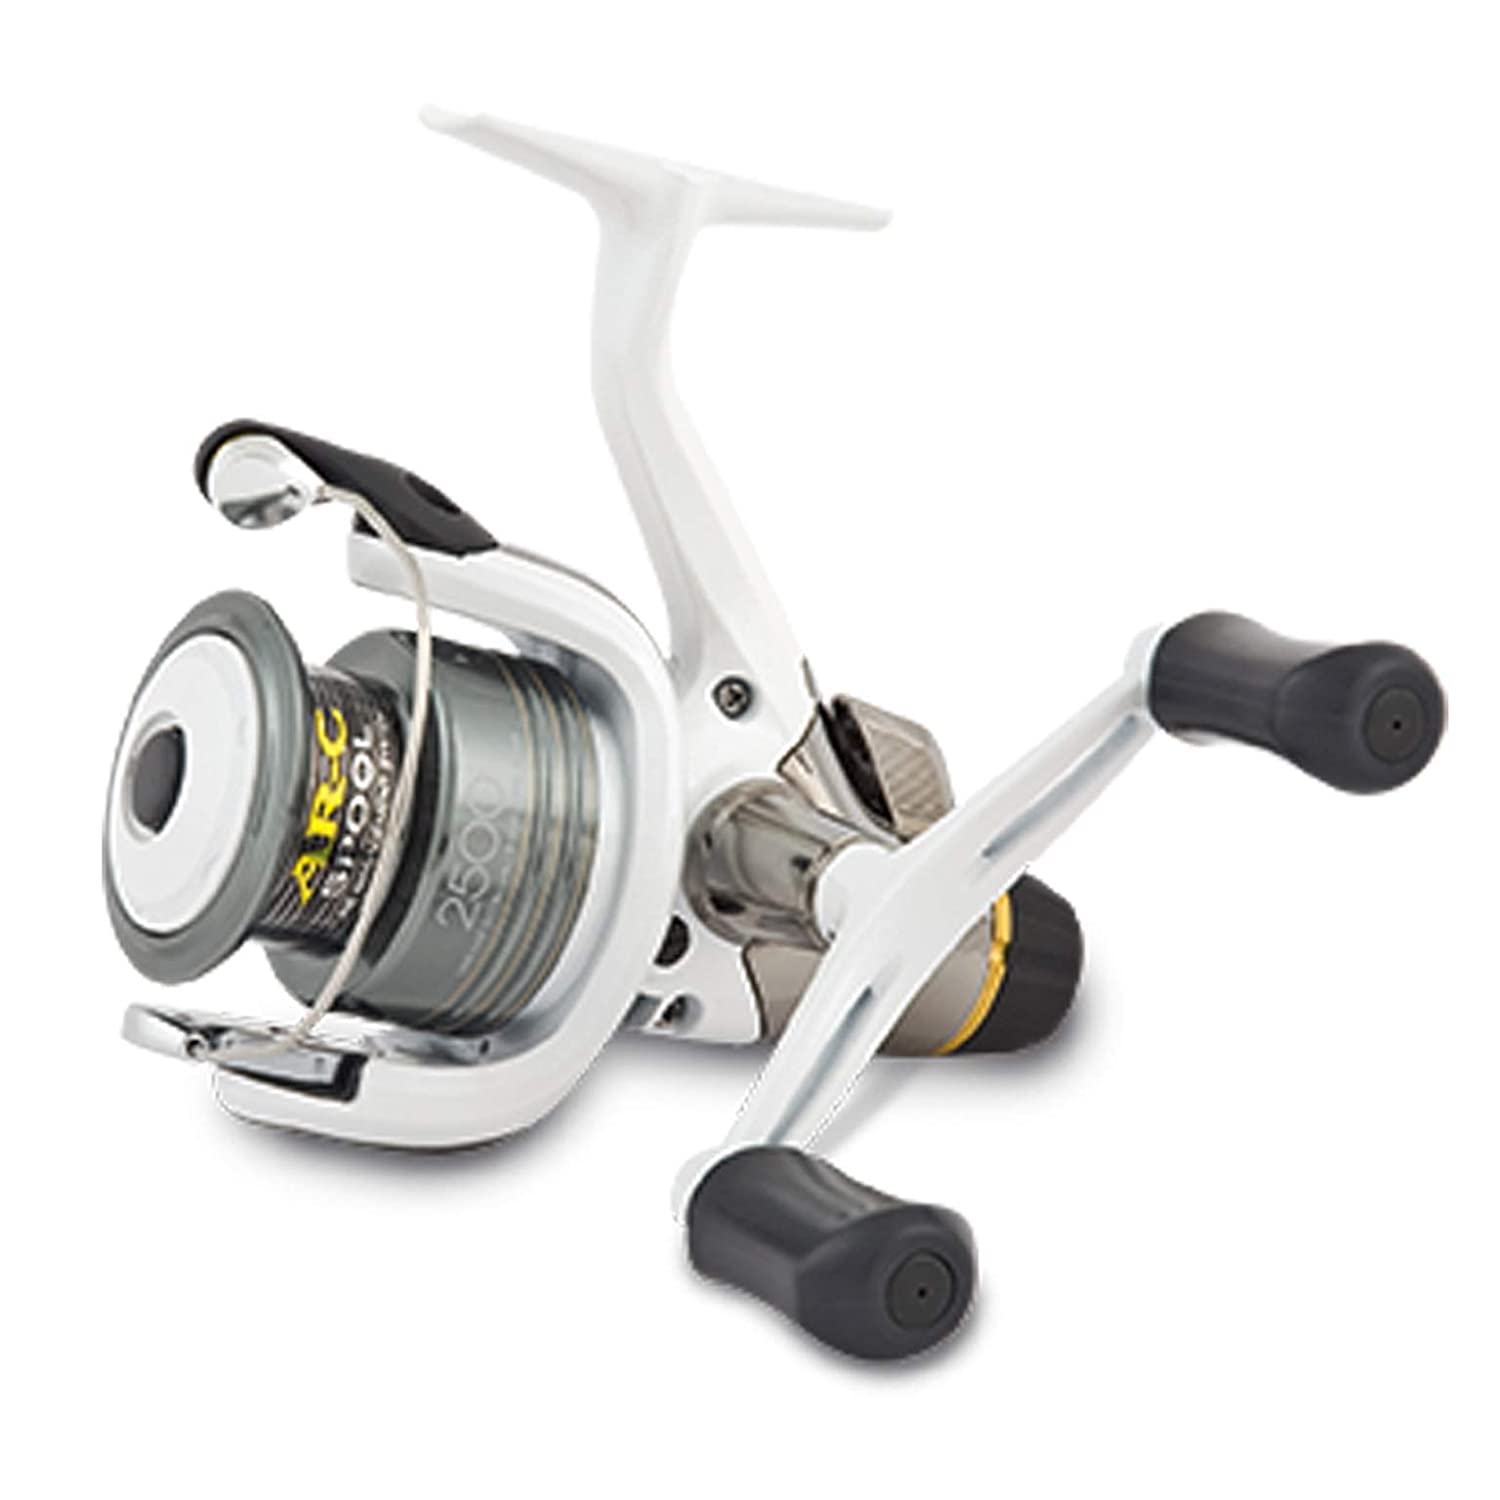 Shimano Stradic GTM 3000 SRC Spinning Fishing Reel With Fighting Drag, STR3000SGTMRC